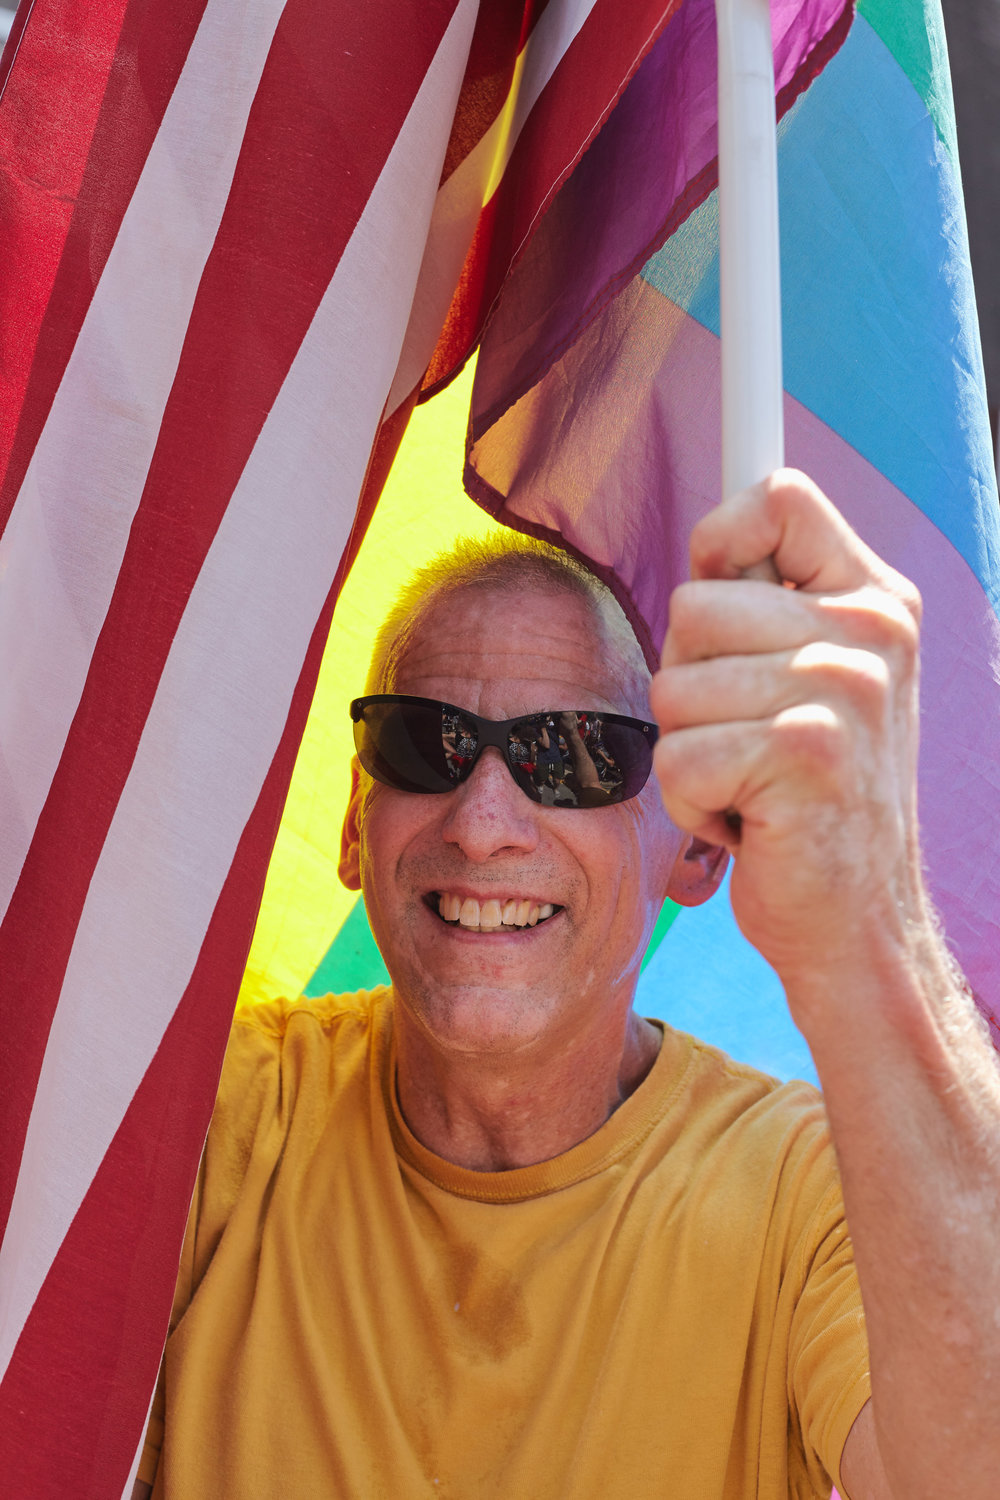 A Big Gay Dance Party attendee shrouded in flags.